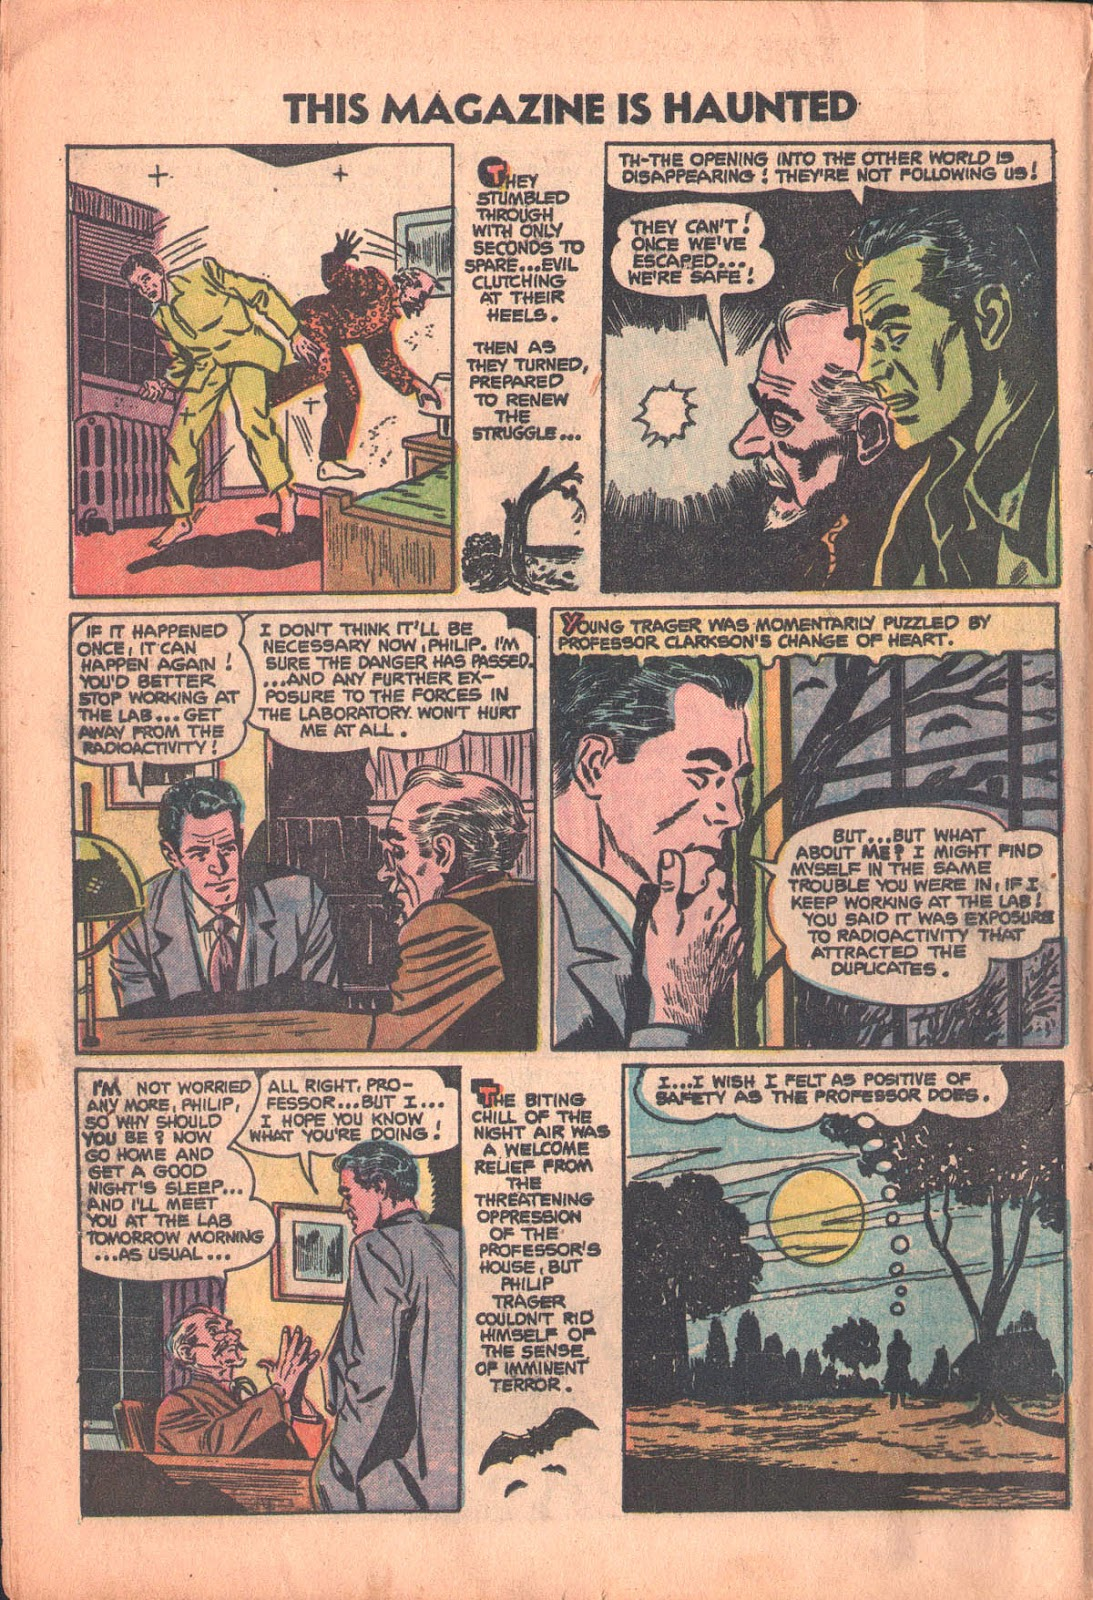 Read online This Magazine Is Haunted comic -  Issue #15 - 10